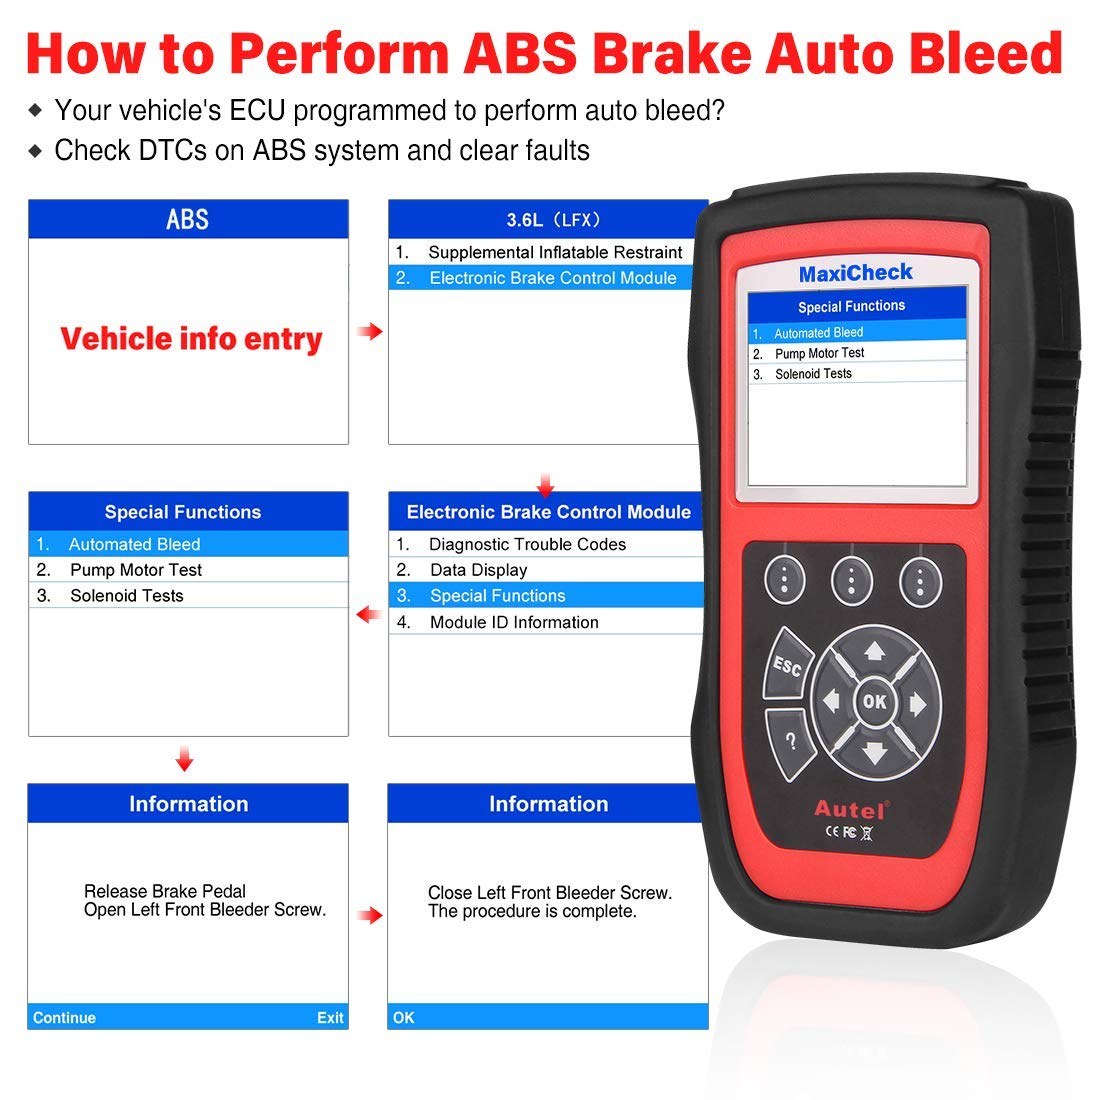 Autel MaxiCheck Pro OBD2 Scanner Automotive Diagnostic Scan Tool with ABS Auto Bleed, SRS Airbag, Oil Reset, SAS, EPB, BMS for Specific Vehicles 1996 to 2012 by Autel (Image #2)